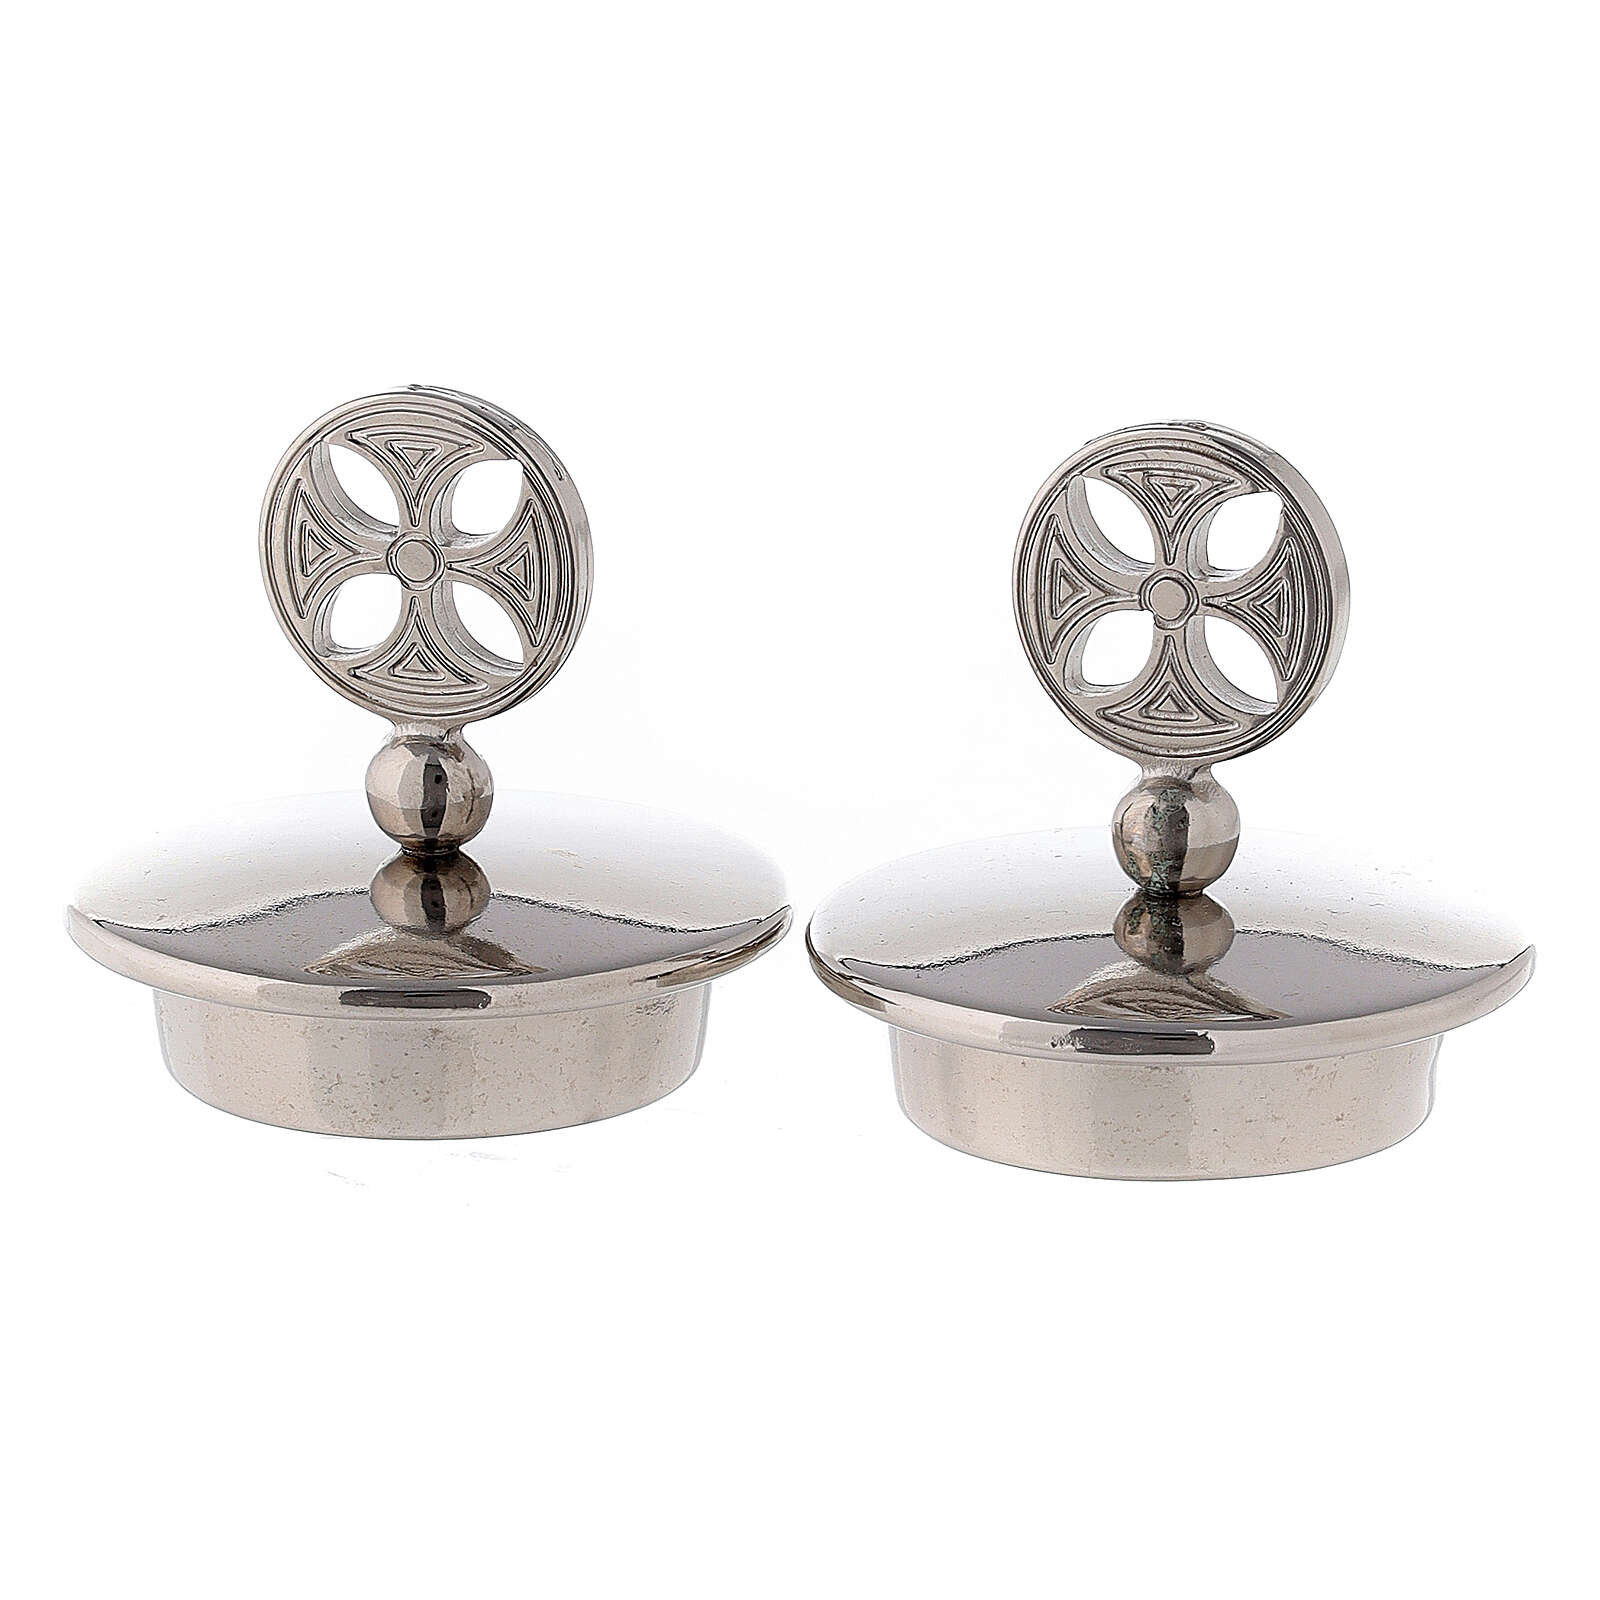 Pair of 24K silver plated brass caps for Bologna model 4